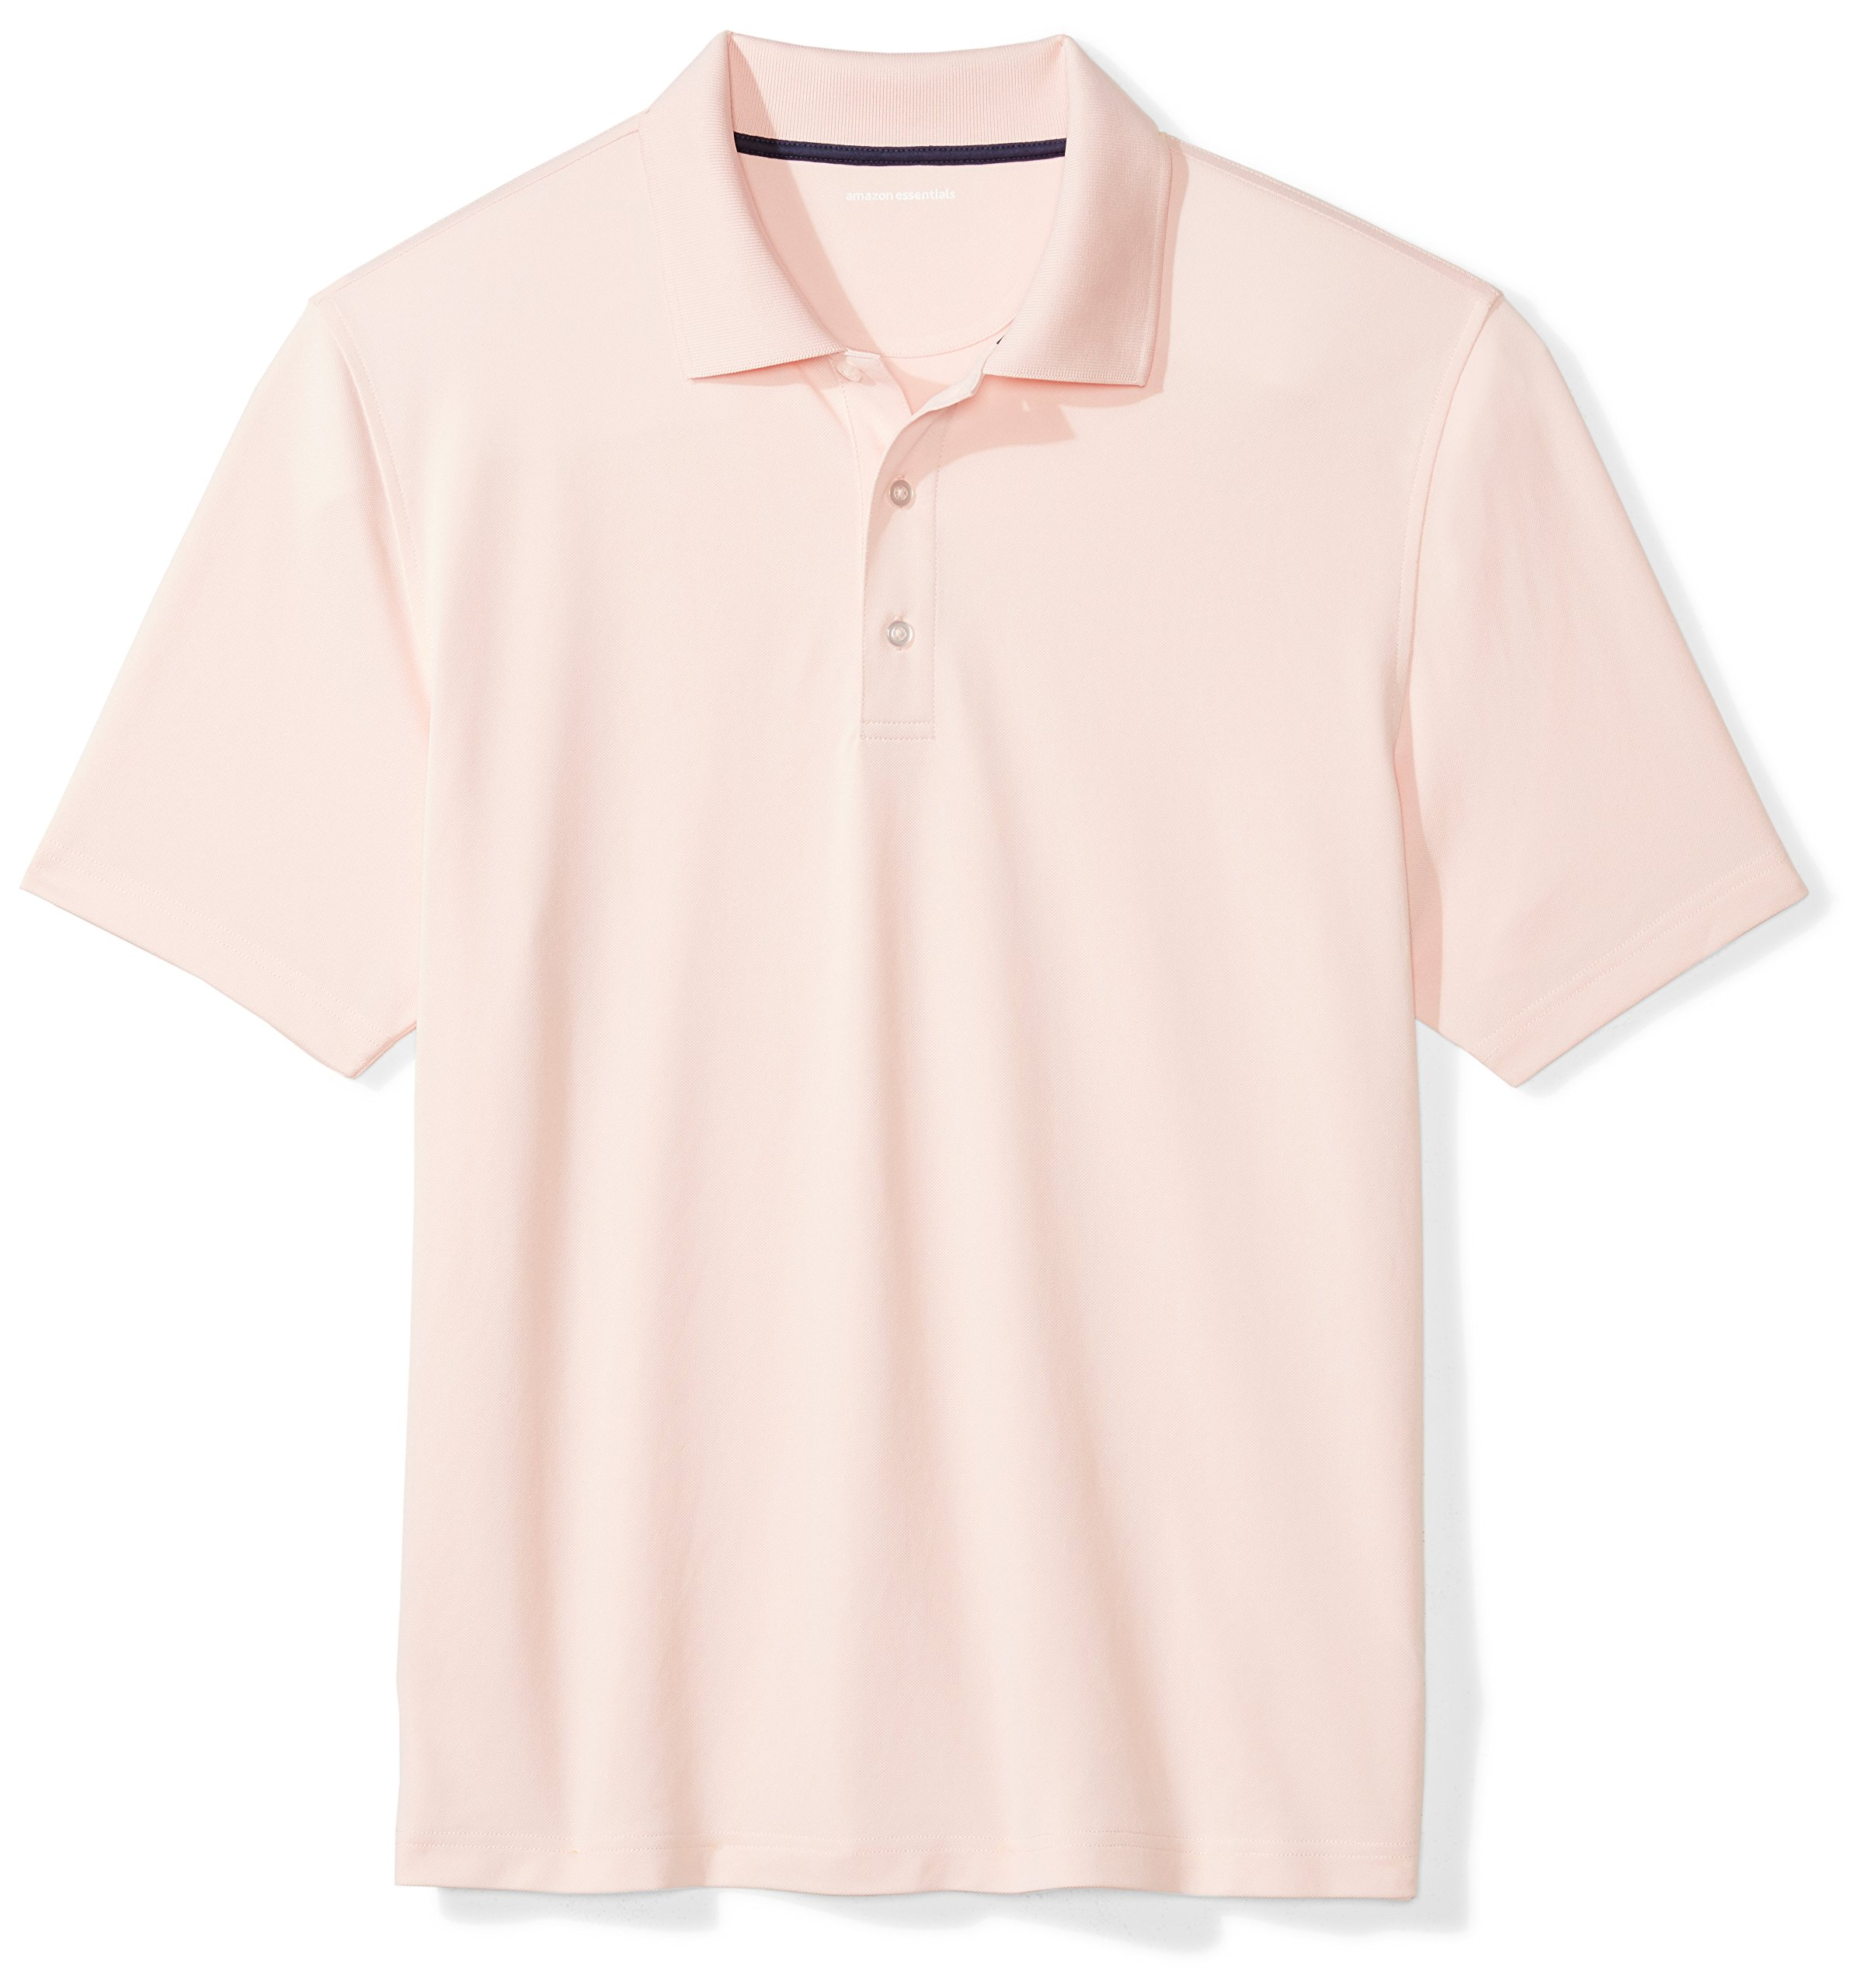 Amazon Essentials Men's Regular-Fit Quick-Dry Golf Polo Shirt, light pink, Medium by Amazon Essentials